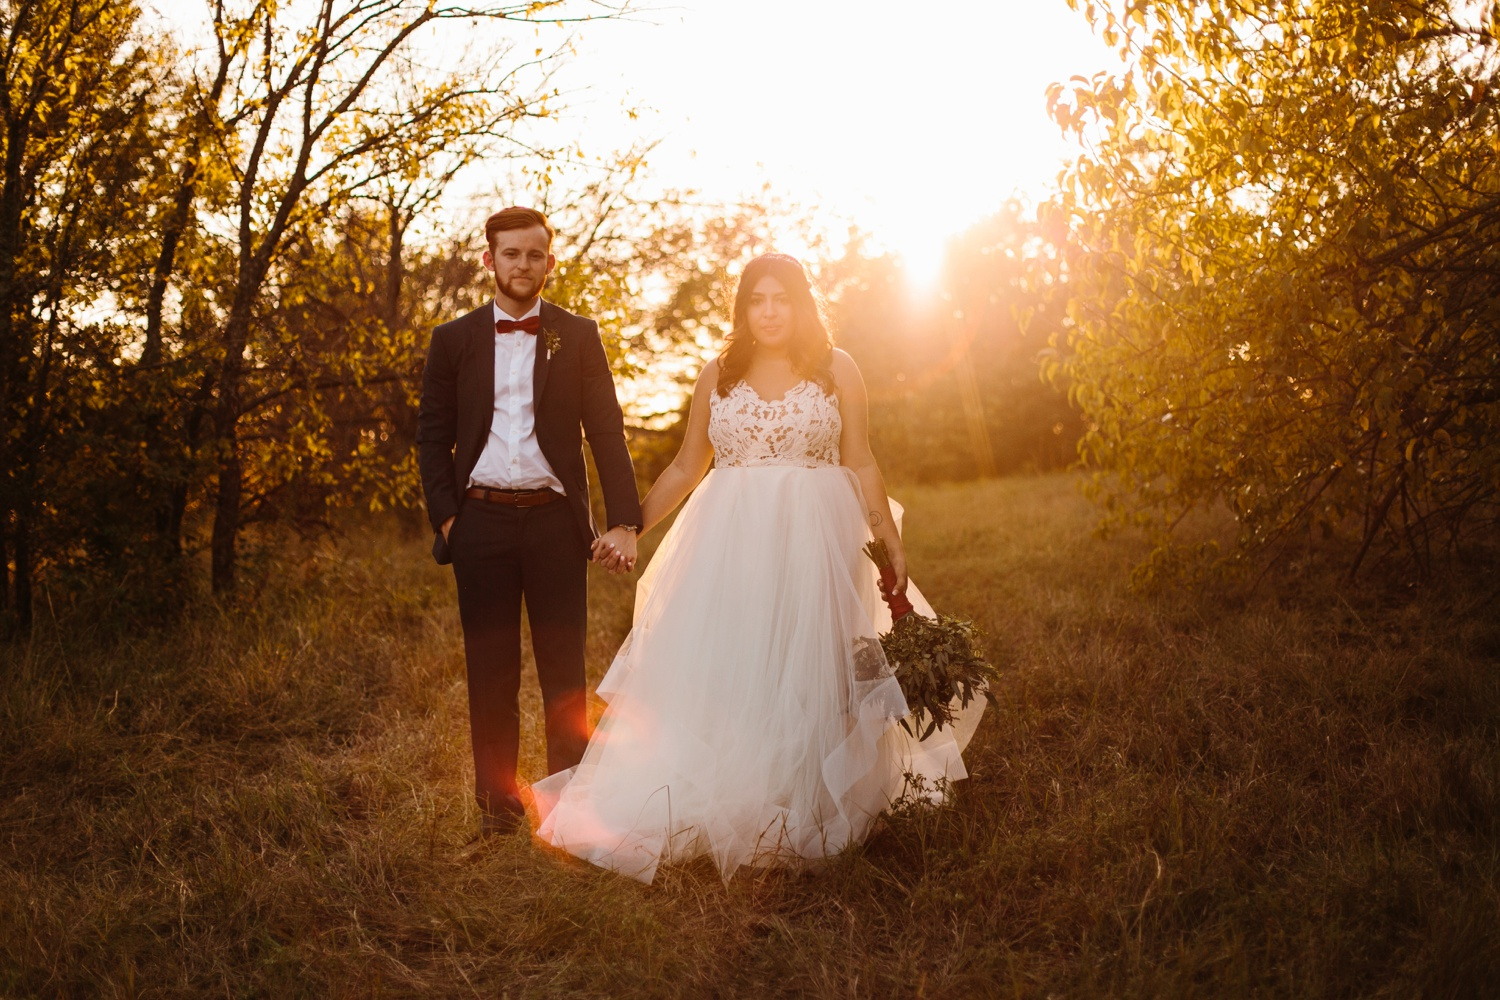 Grant + Lysette | a vibrant, deep burgundy and navy, and mixed metals wedding at Hidden Pines Chapel by North Texas Wedding Photographer Rachel Meagan Photography 235